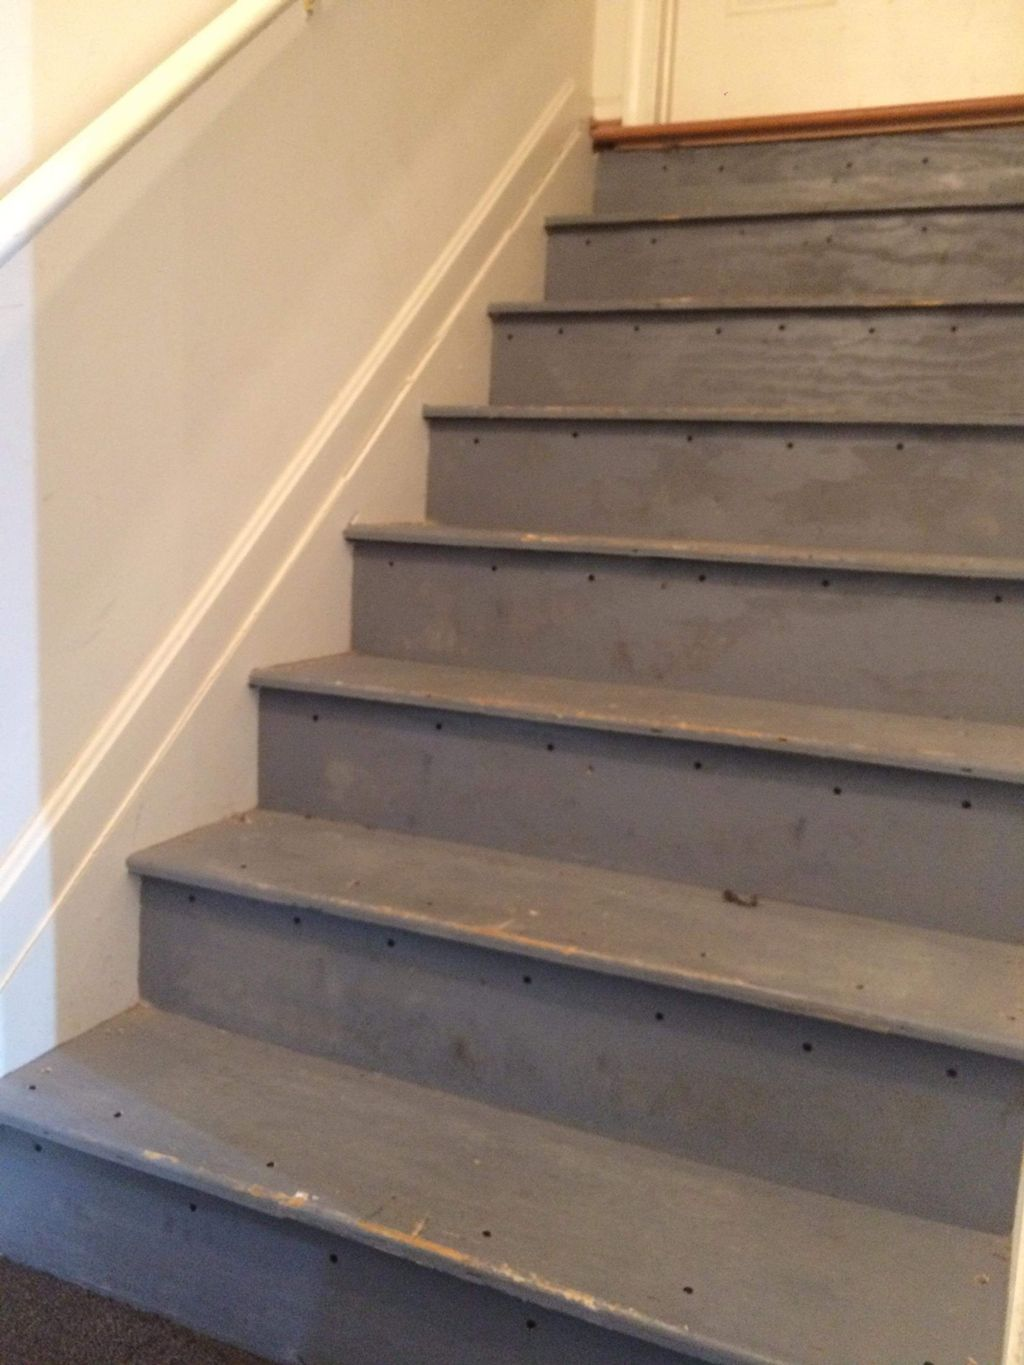 Stairs reinforced and carpet installation